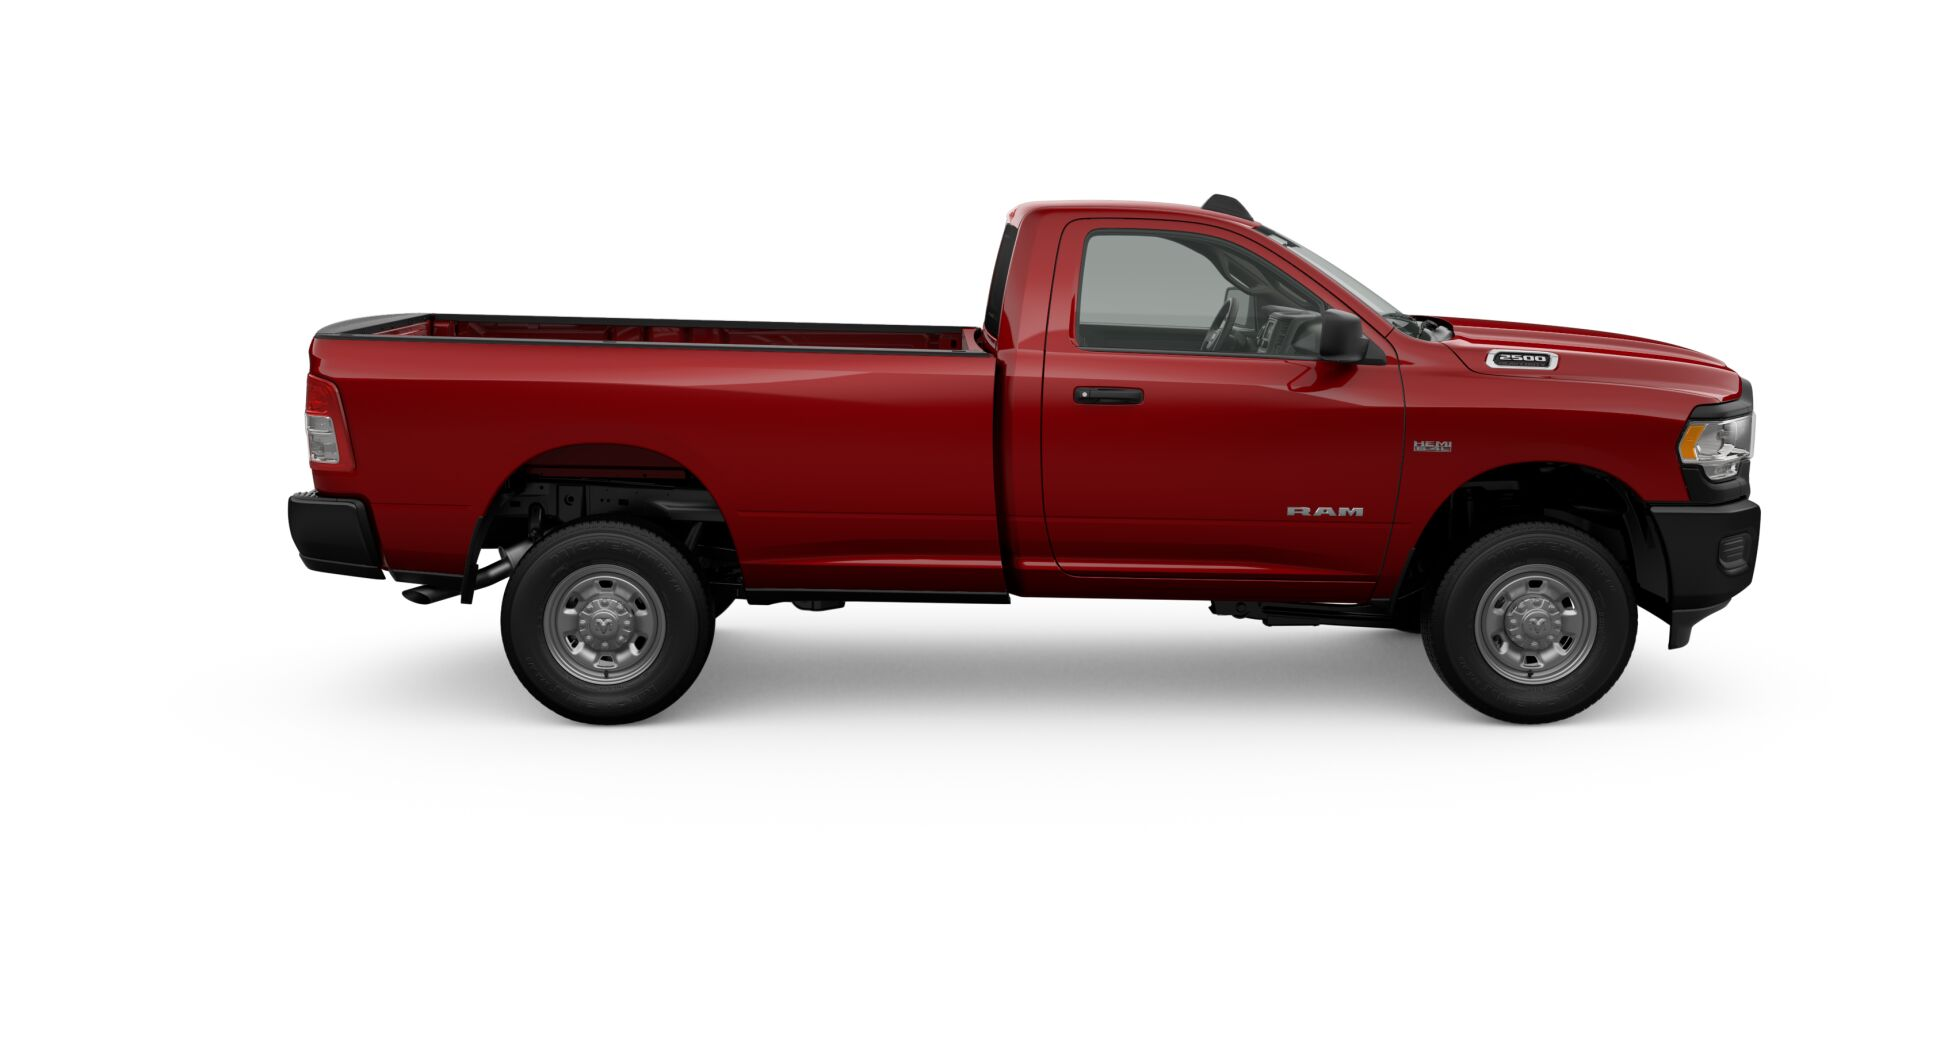 2019 Ram Tradesman Red Exterior Side Profile